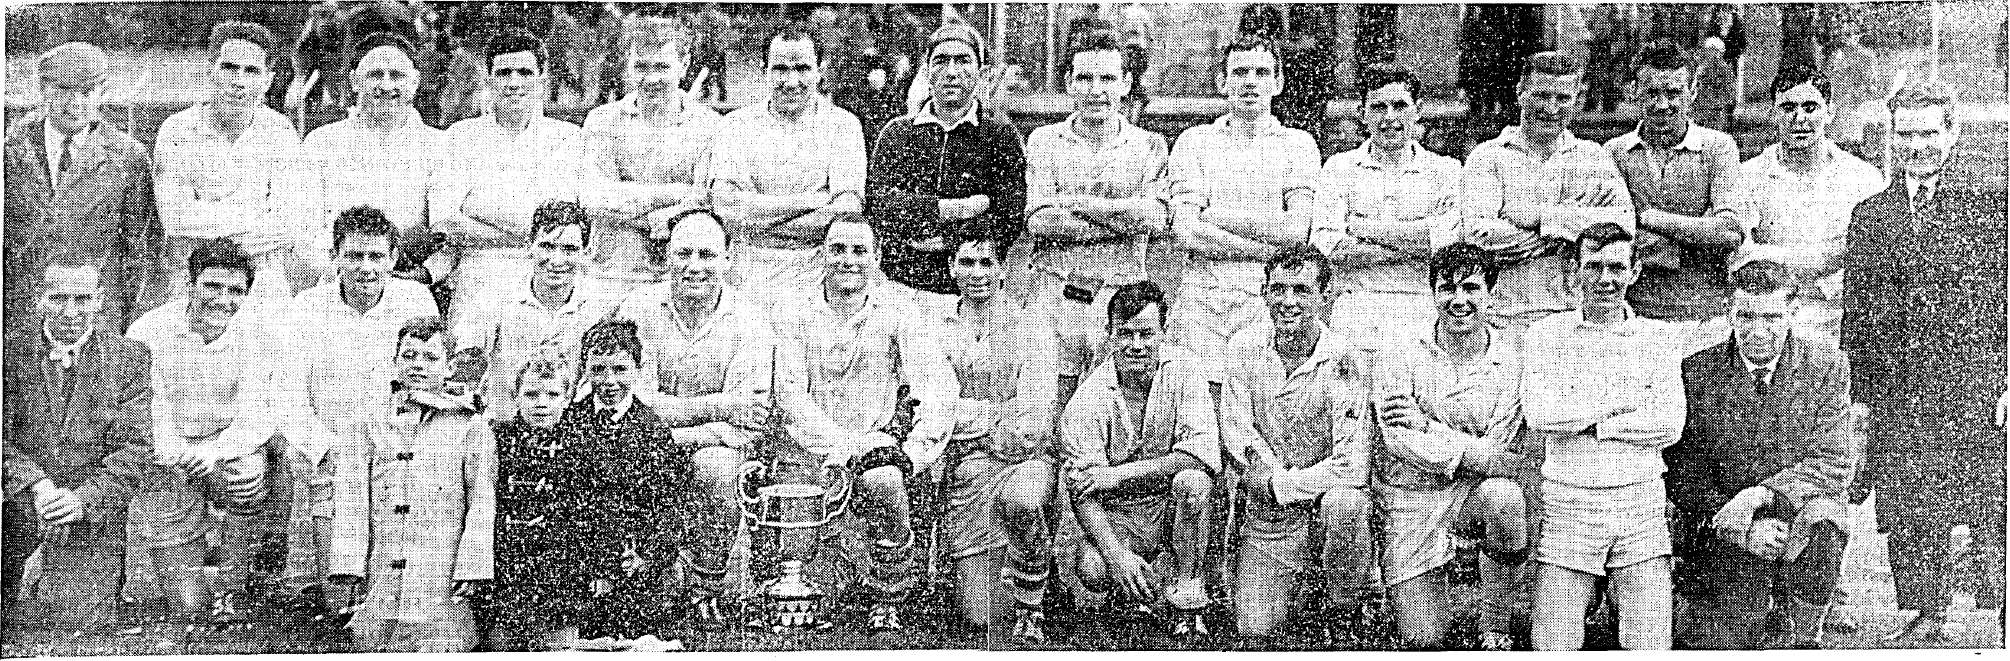 The 1963 Senior championship winning side